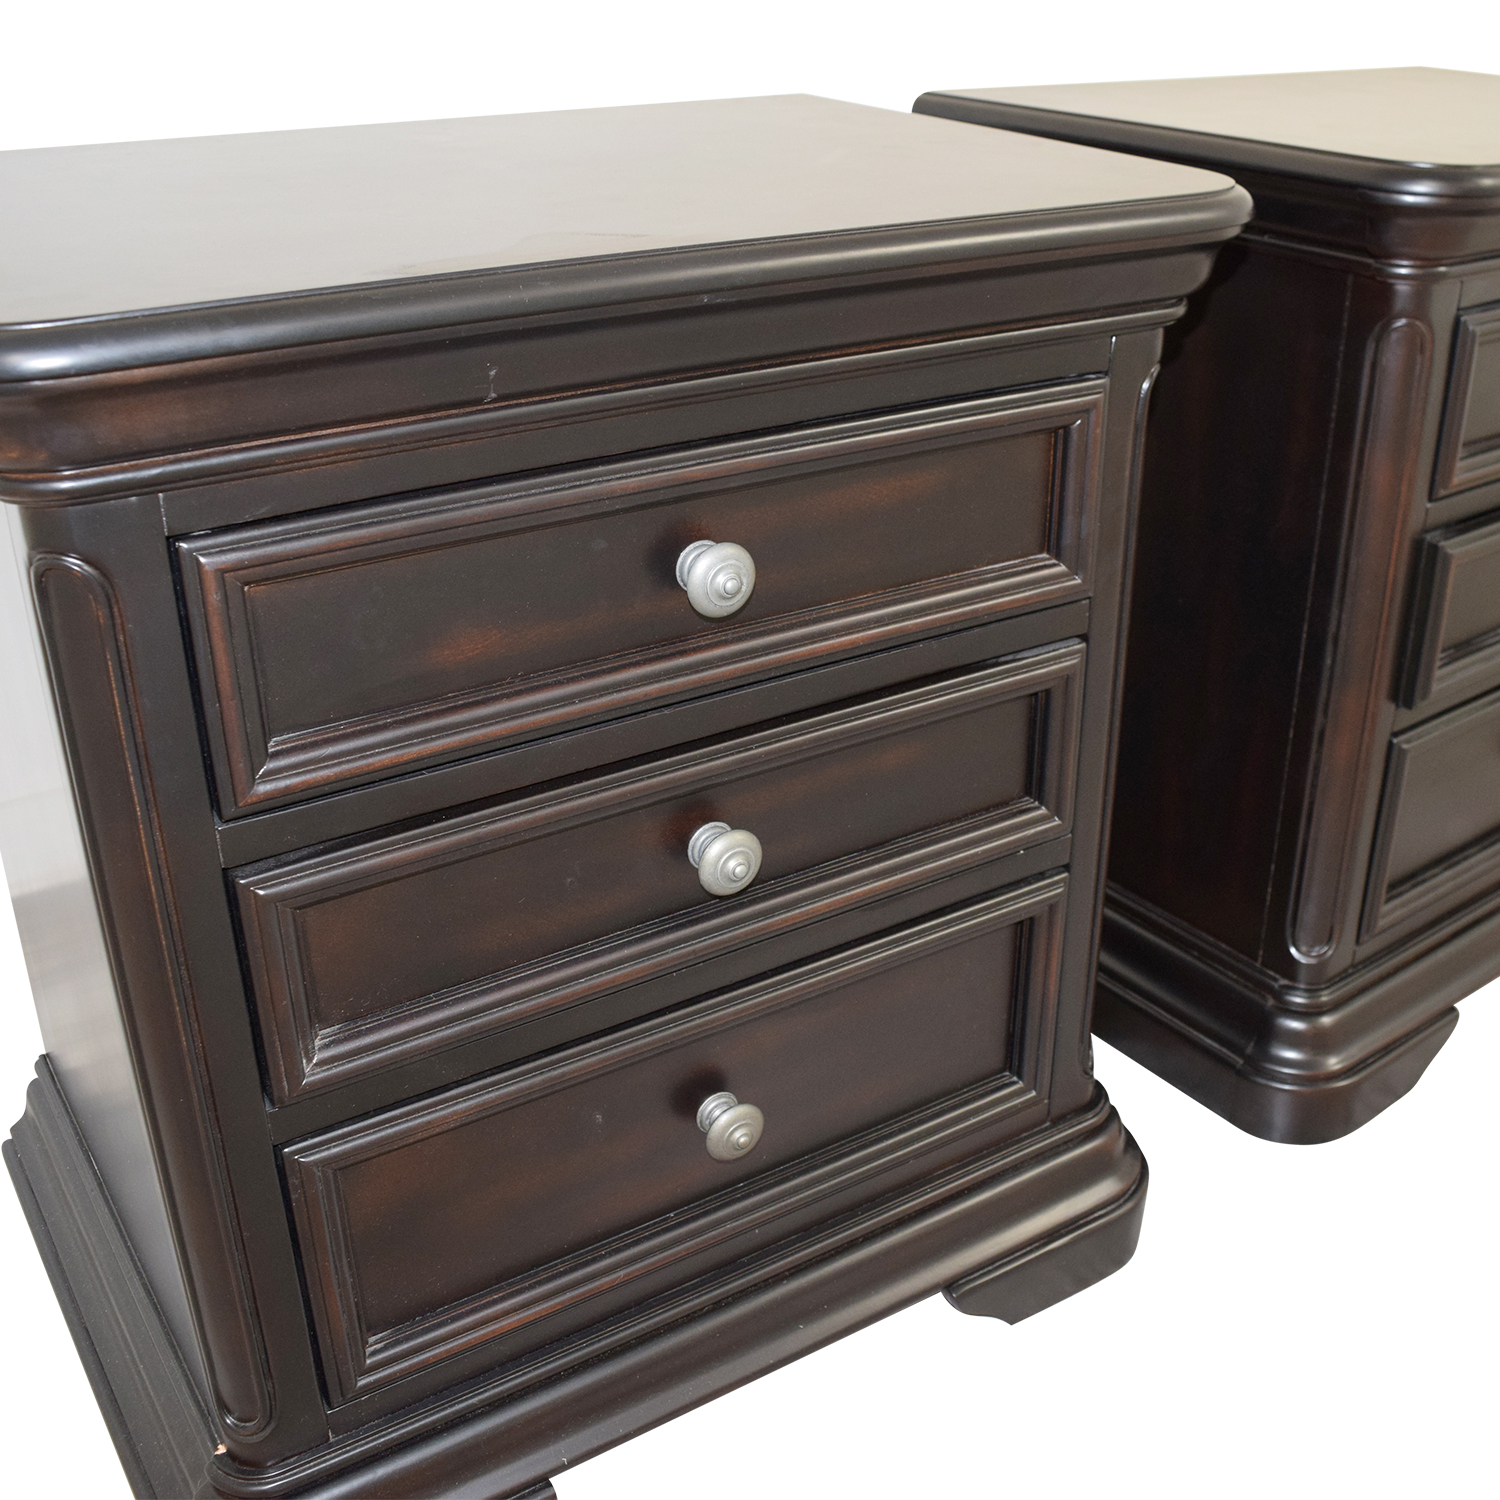 Raymour & Flanigan Raymour & Flanigan Three-Drawer Night Stands dimensions